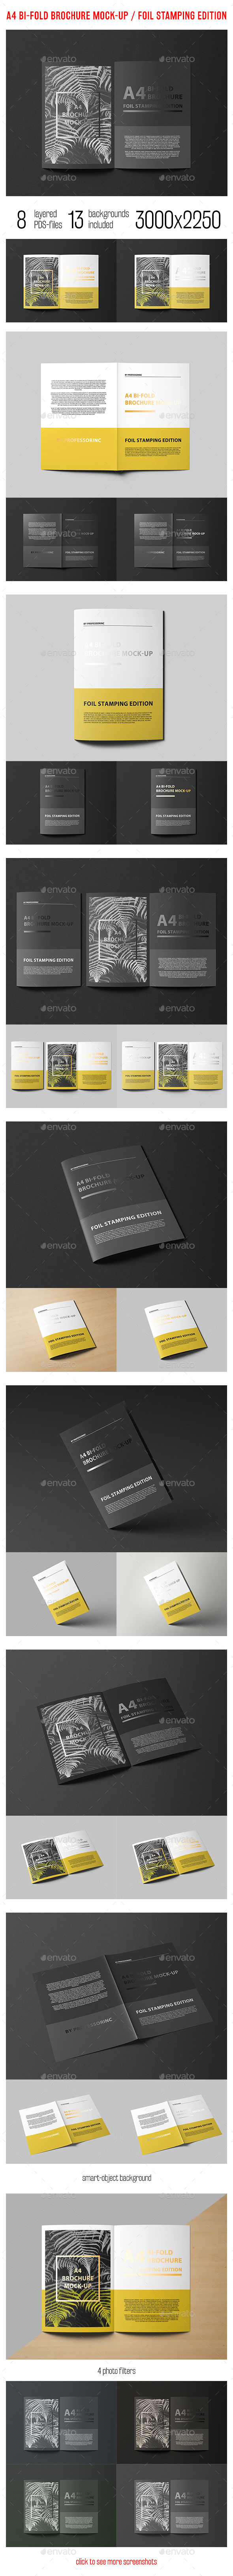 A4 Bi-Fold Brochure Mock-Up Foil Stamping Edition - Brochures Print